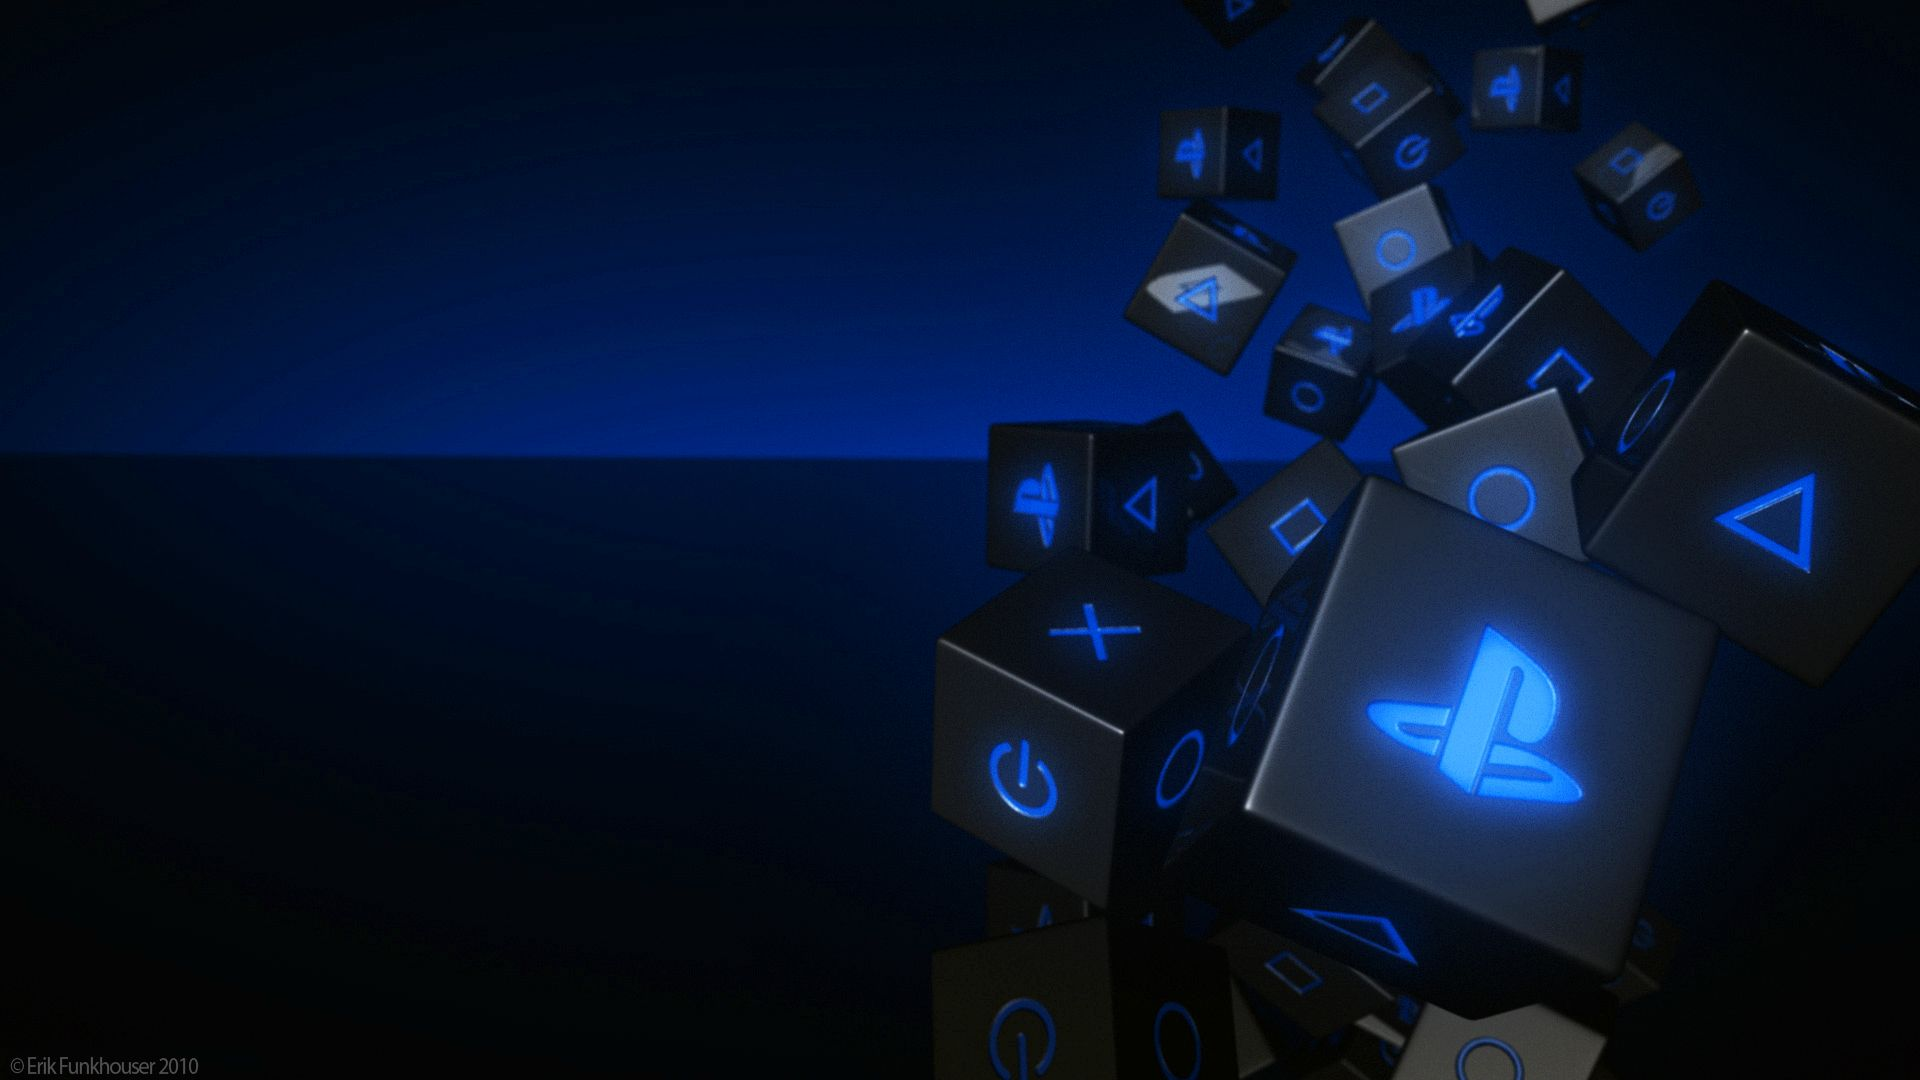 Free Download Playstation 4 Wallpaper Hd 1920x1080 For Your